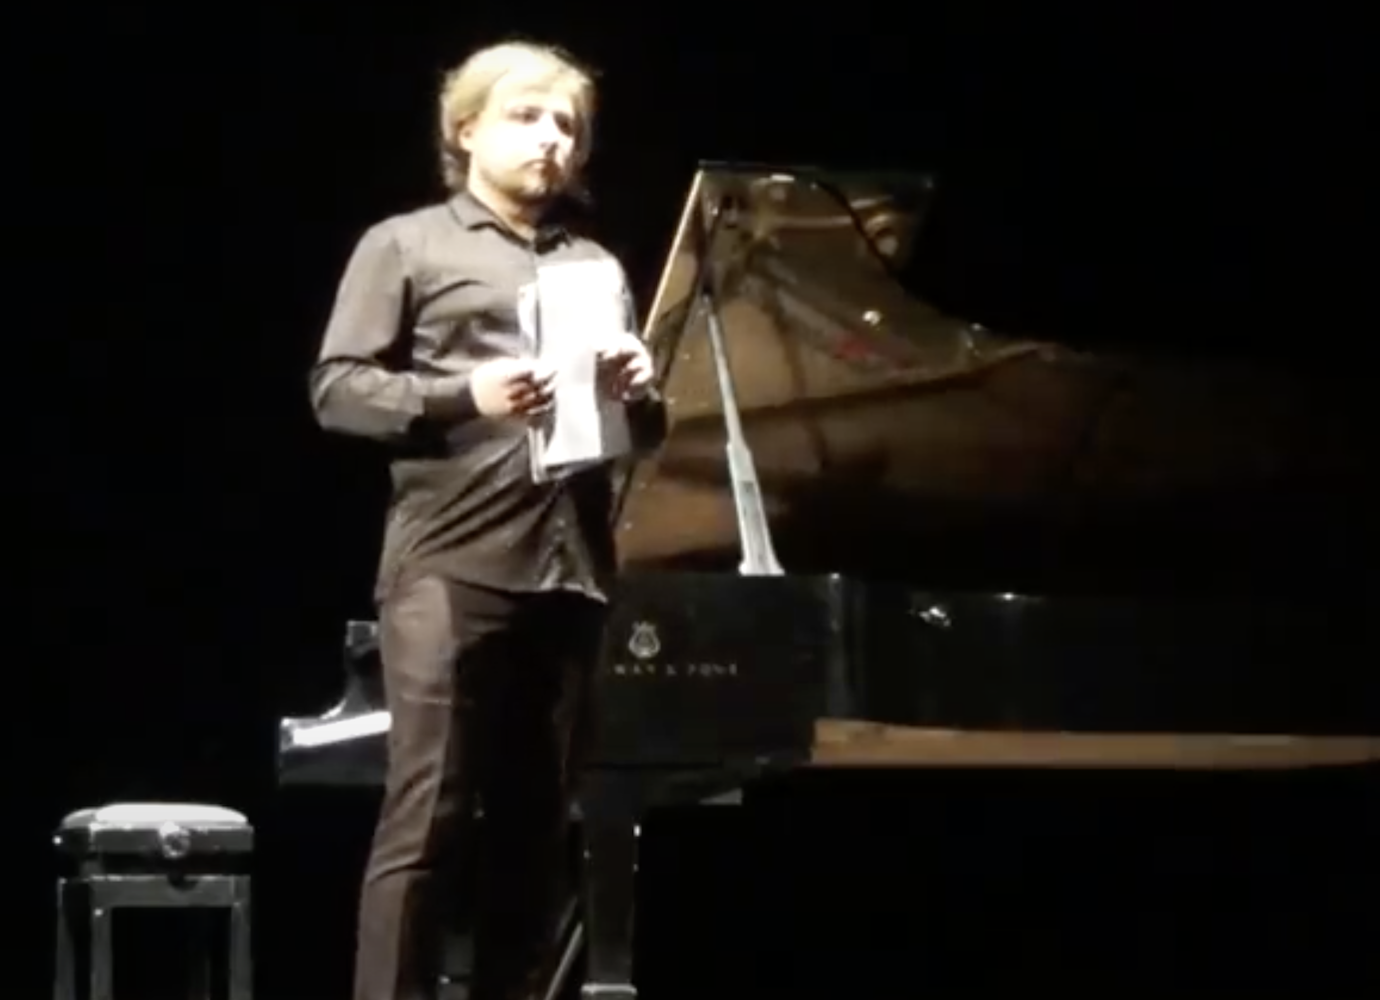 Novosibirsk pianist speaks out against repression